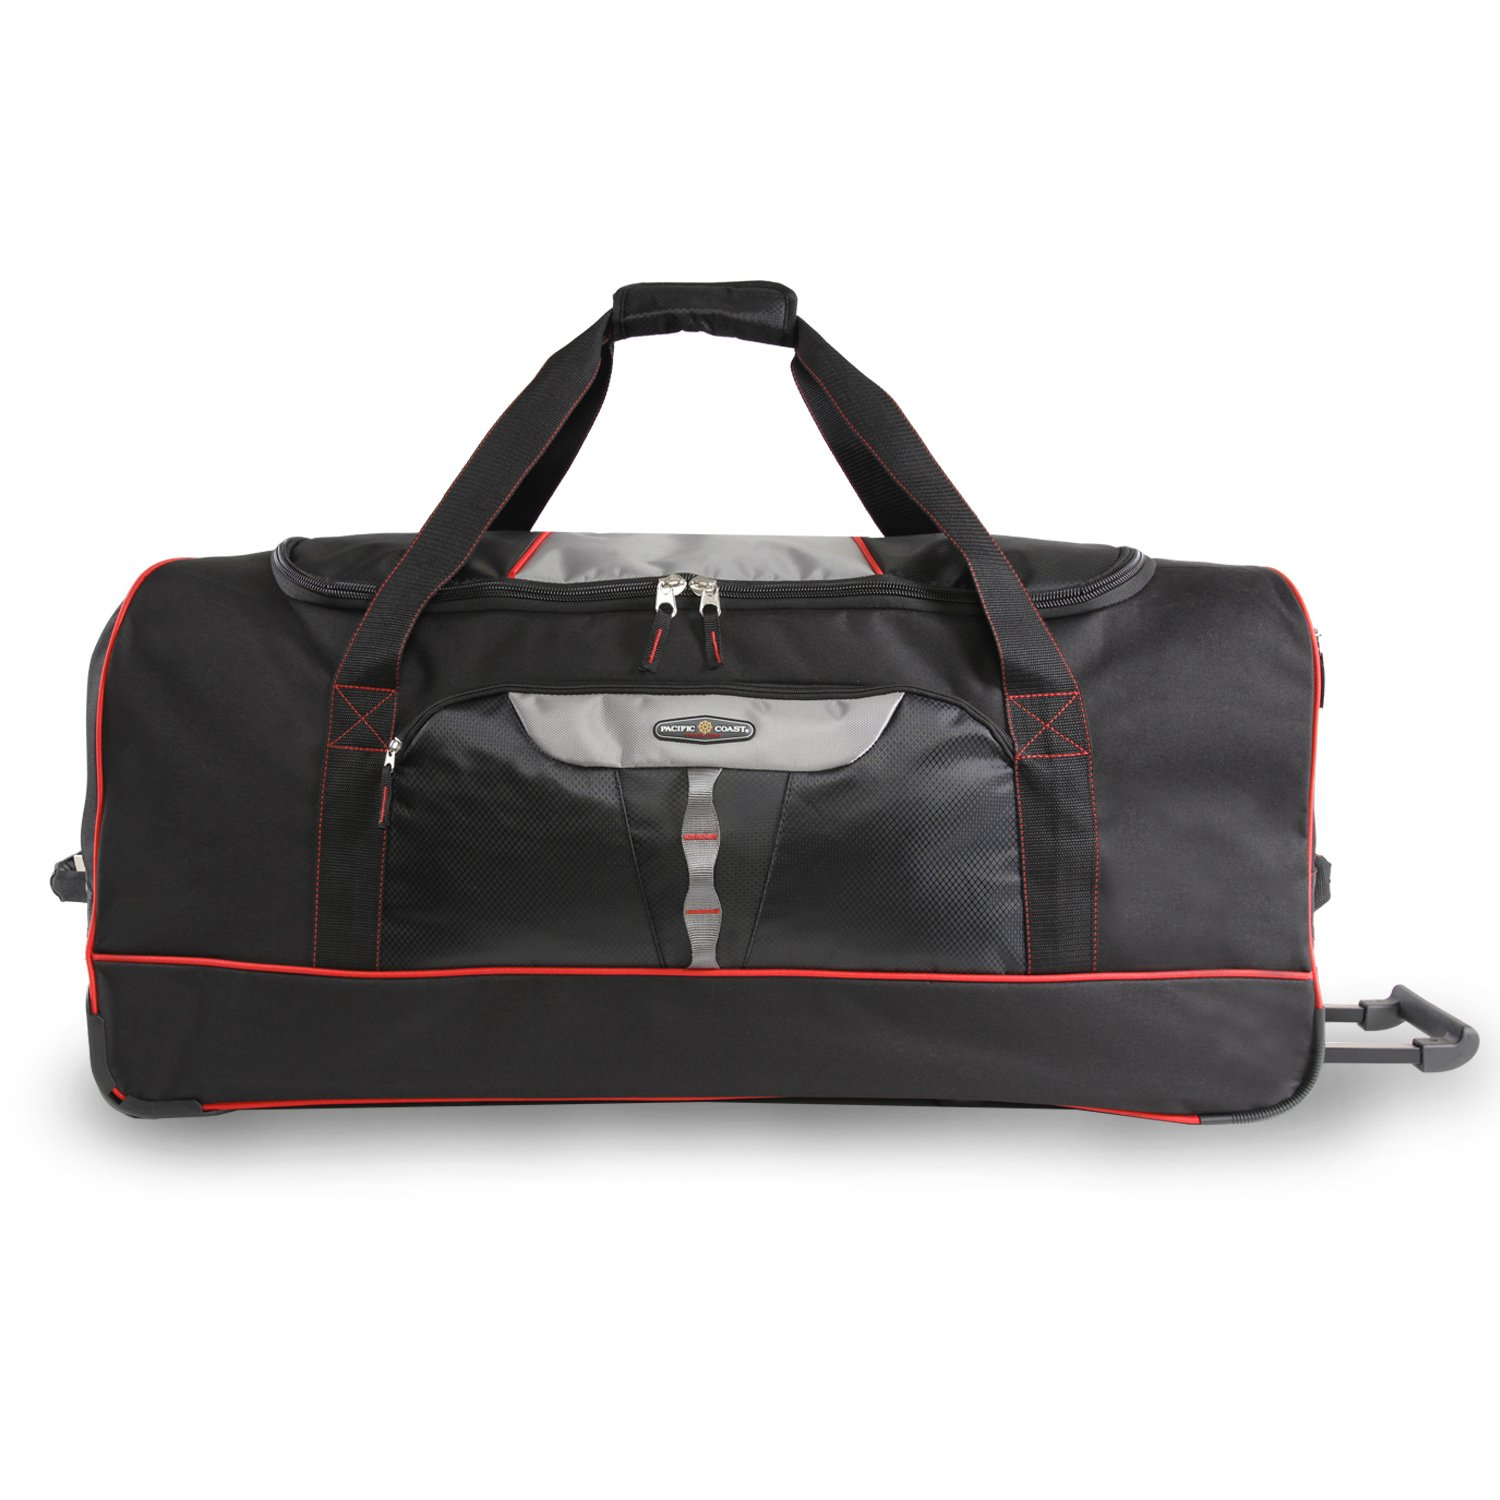 Pacific Coast 35'' Extra Large Rolling Duffel Bag, Black, One Size